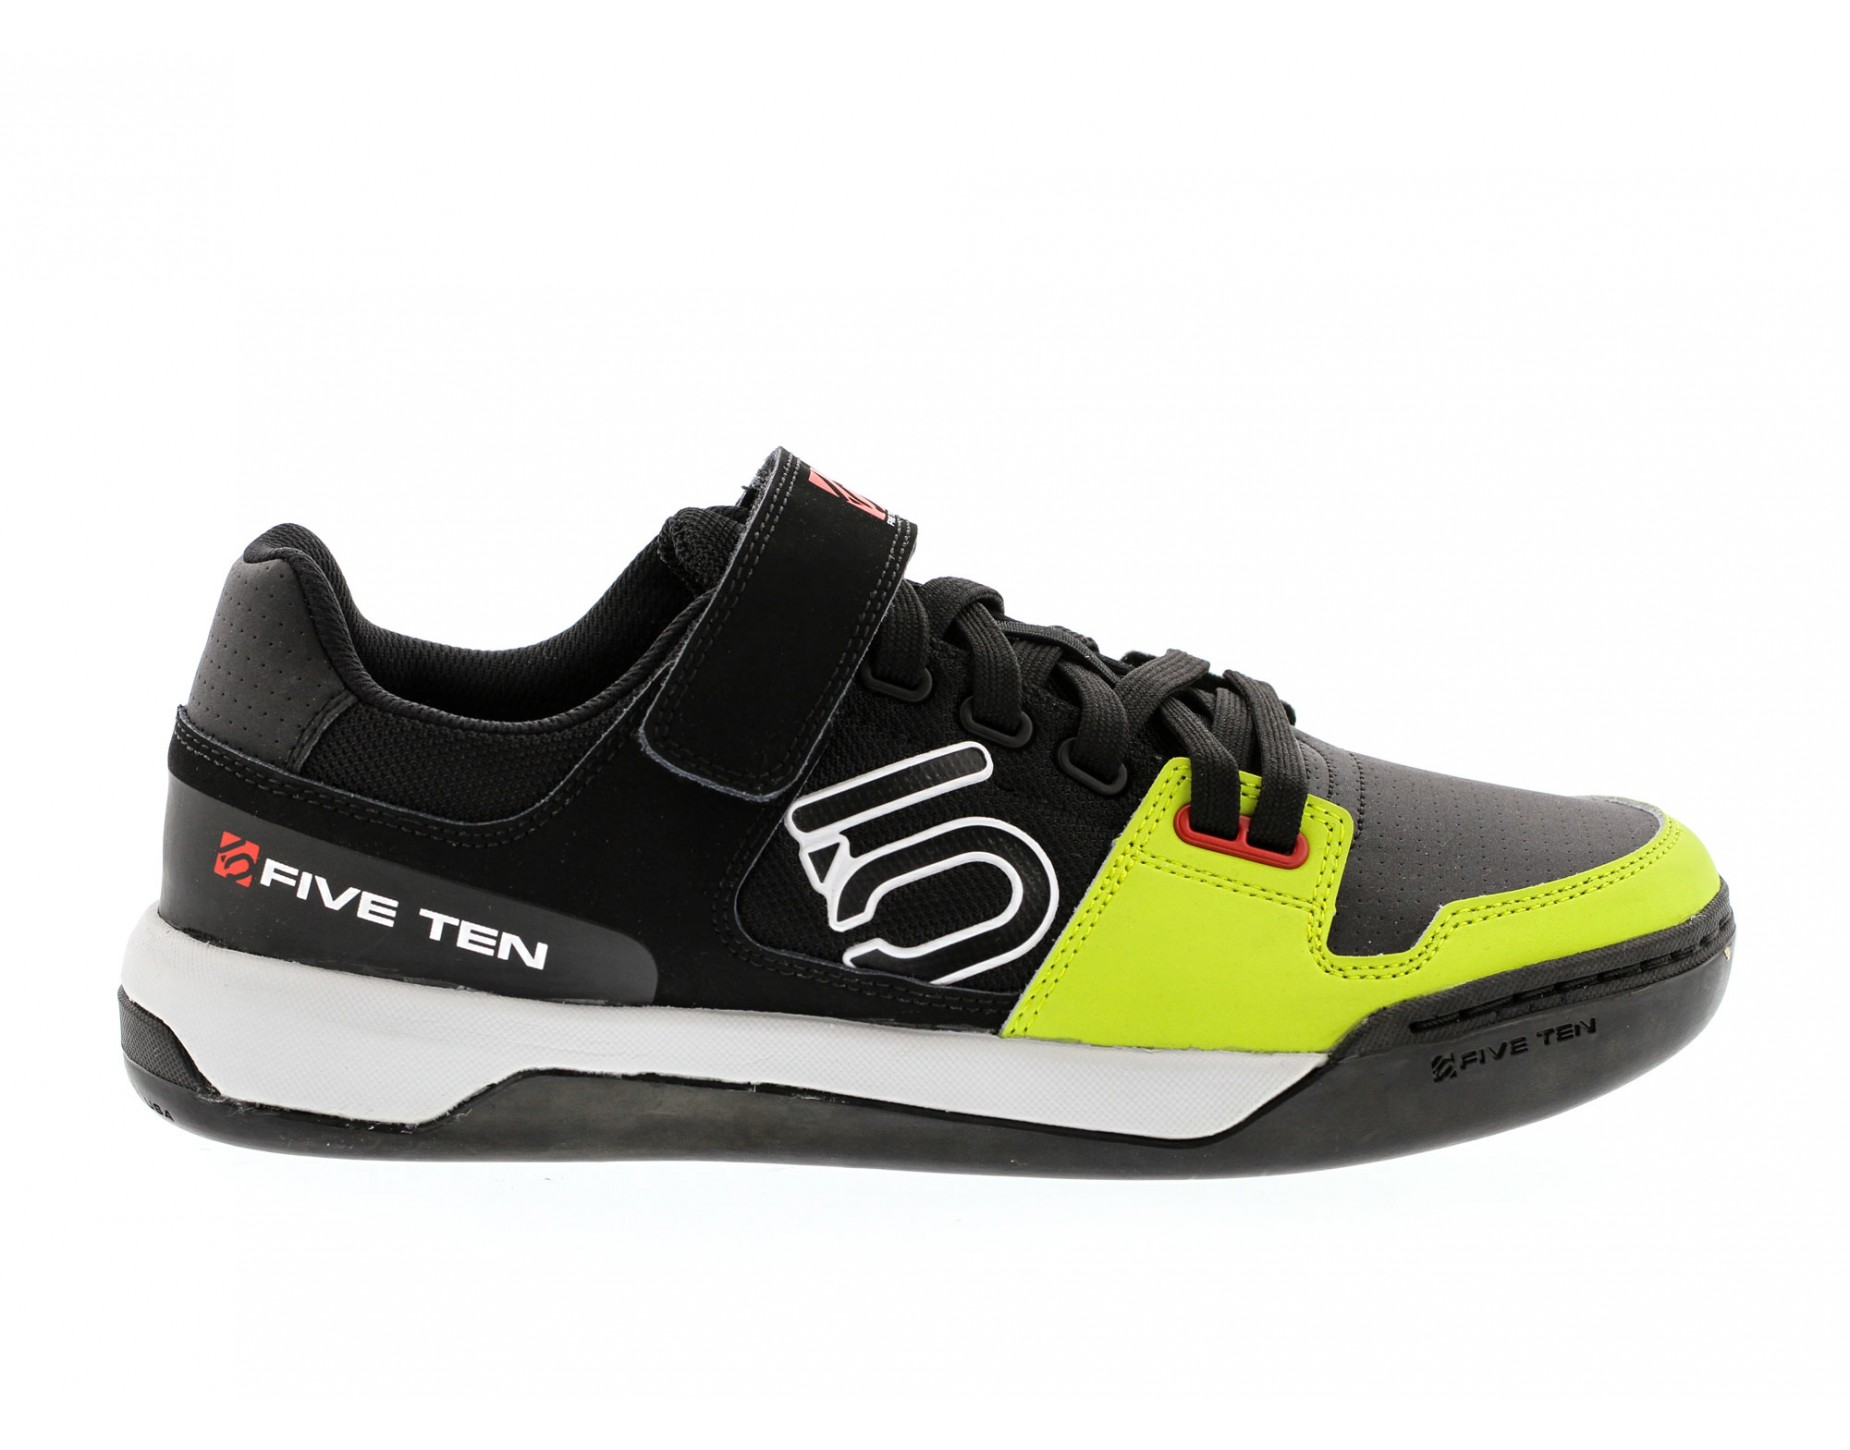 FIVE TEN HELLCAT MTB shoes – everything you need!